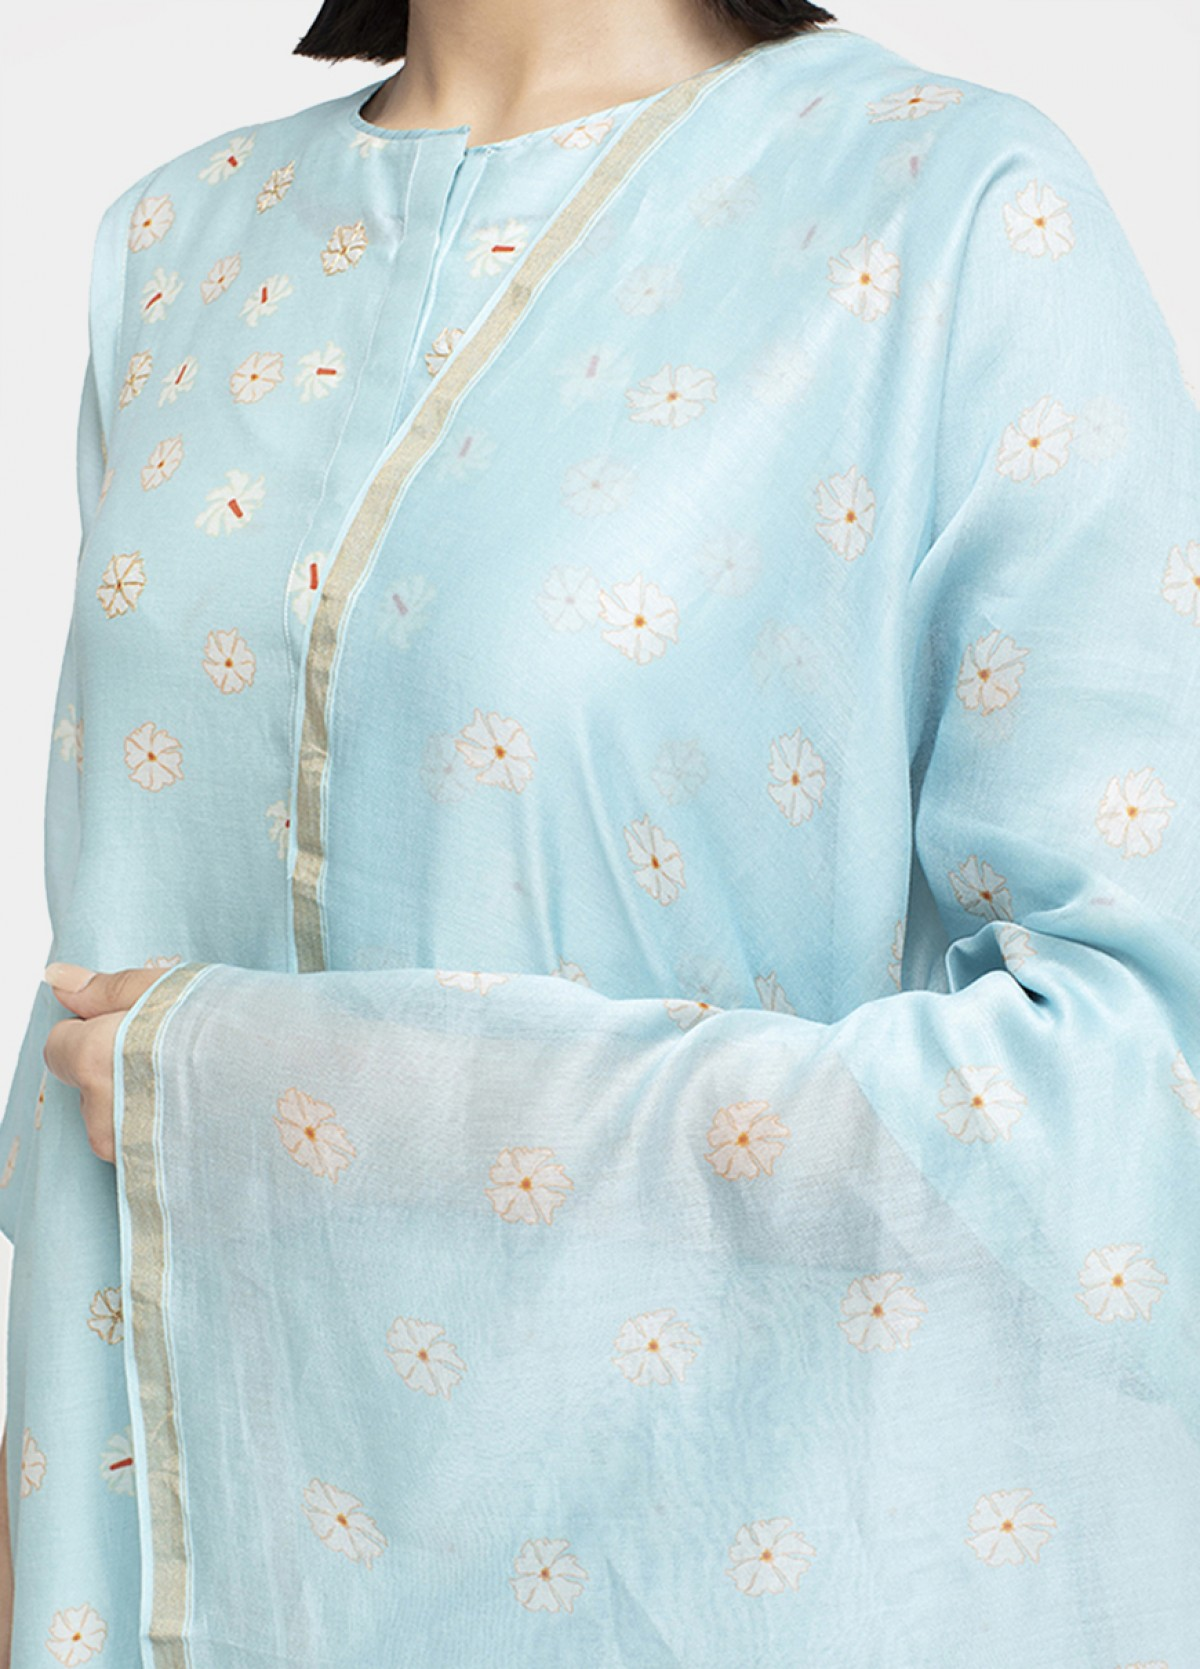 The Shamli Kurta Set